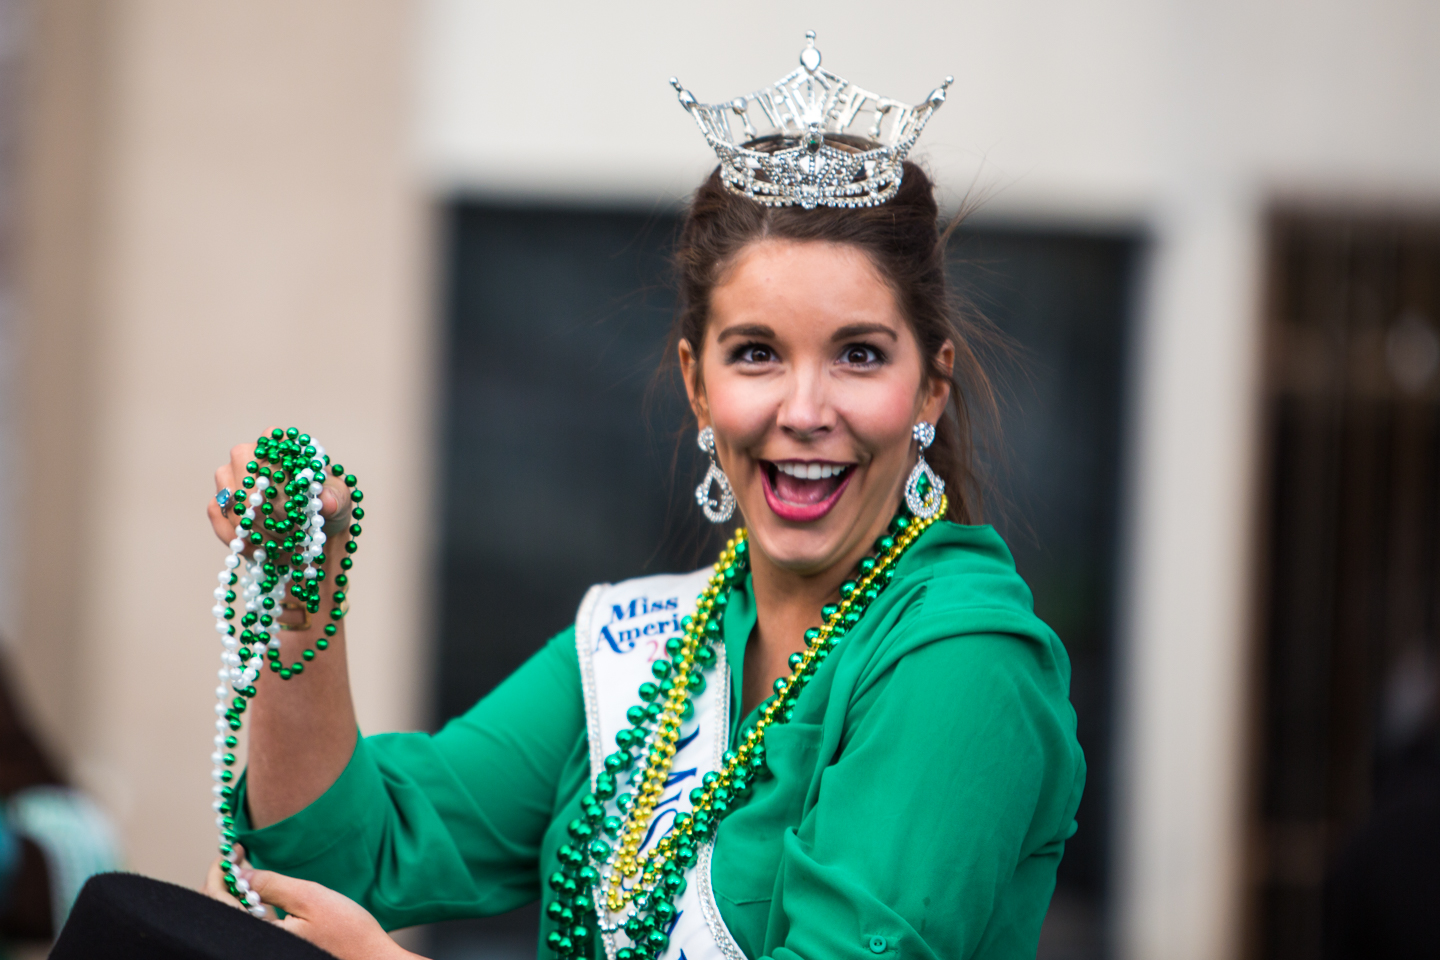 The adorable Miss Arkansas Loren McDaniels throwing me beads. I shot with the right hand, caught with the left!